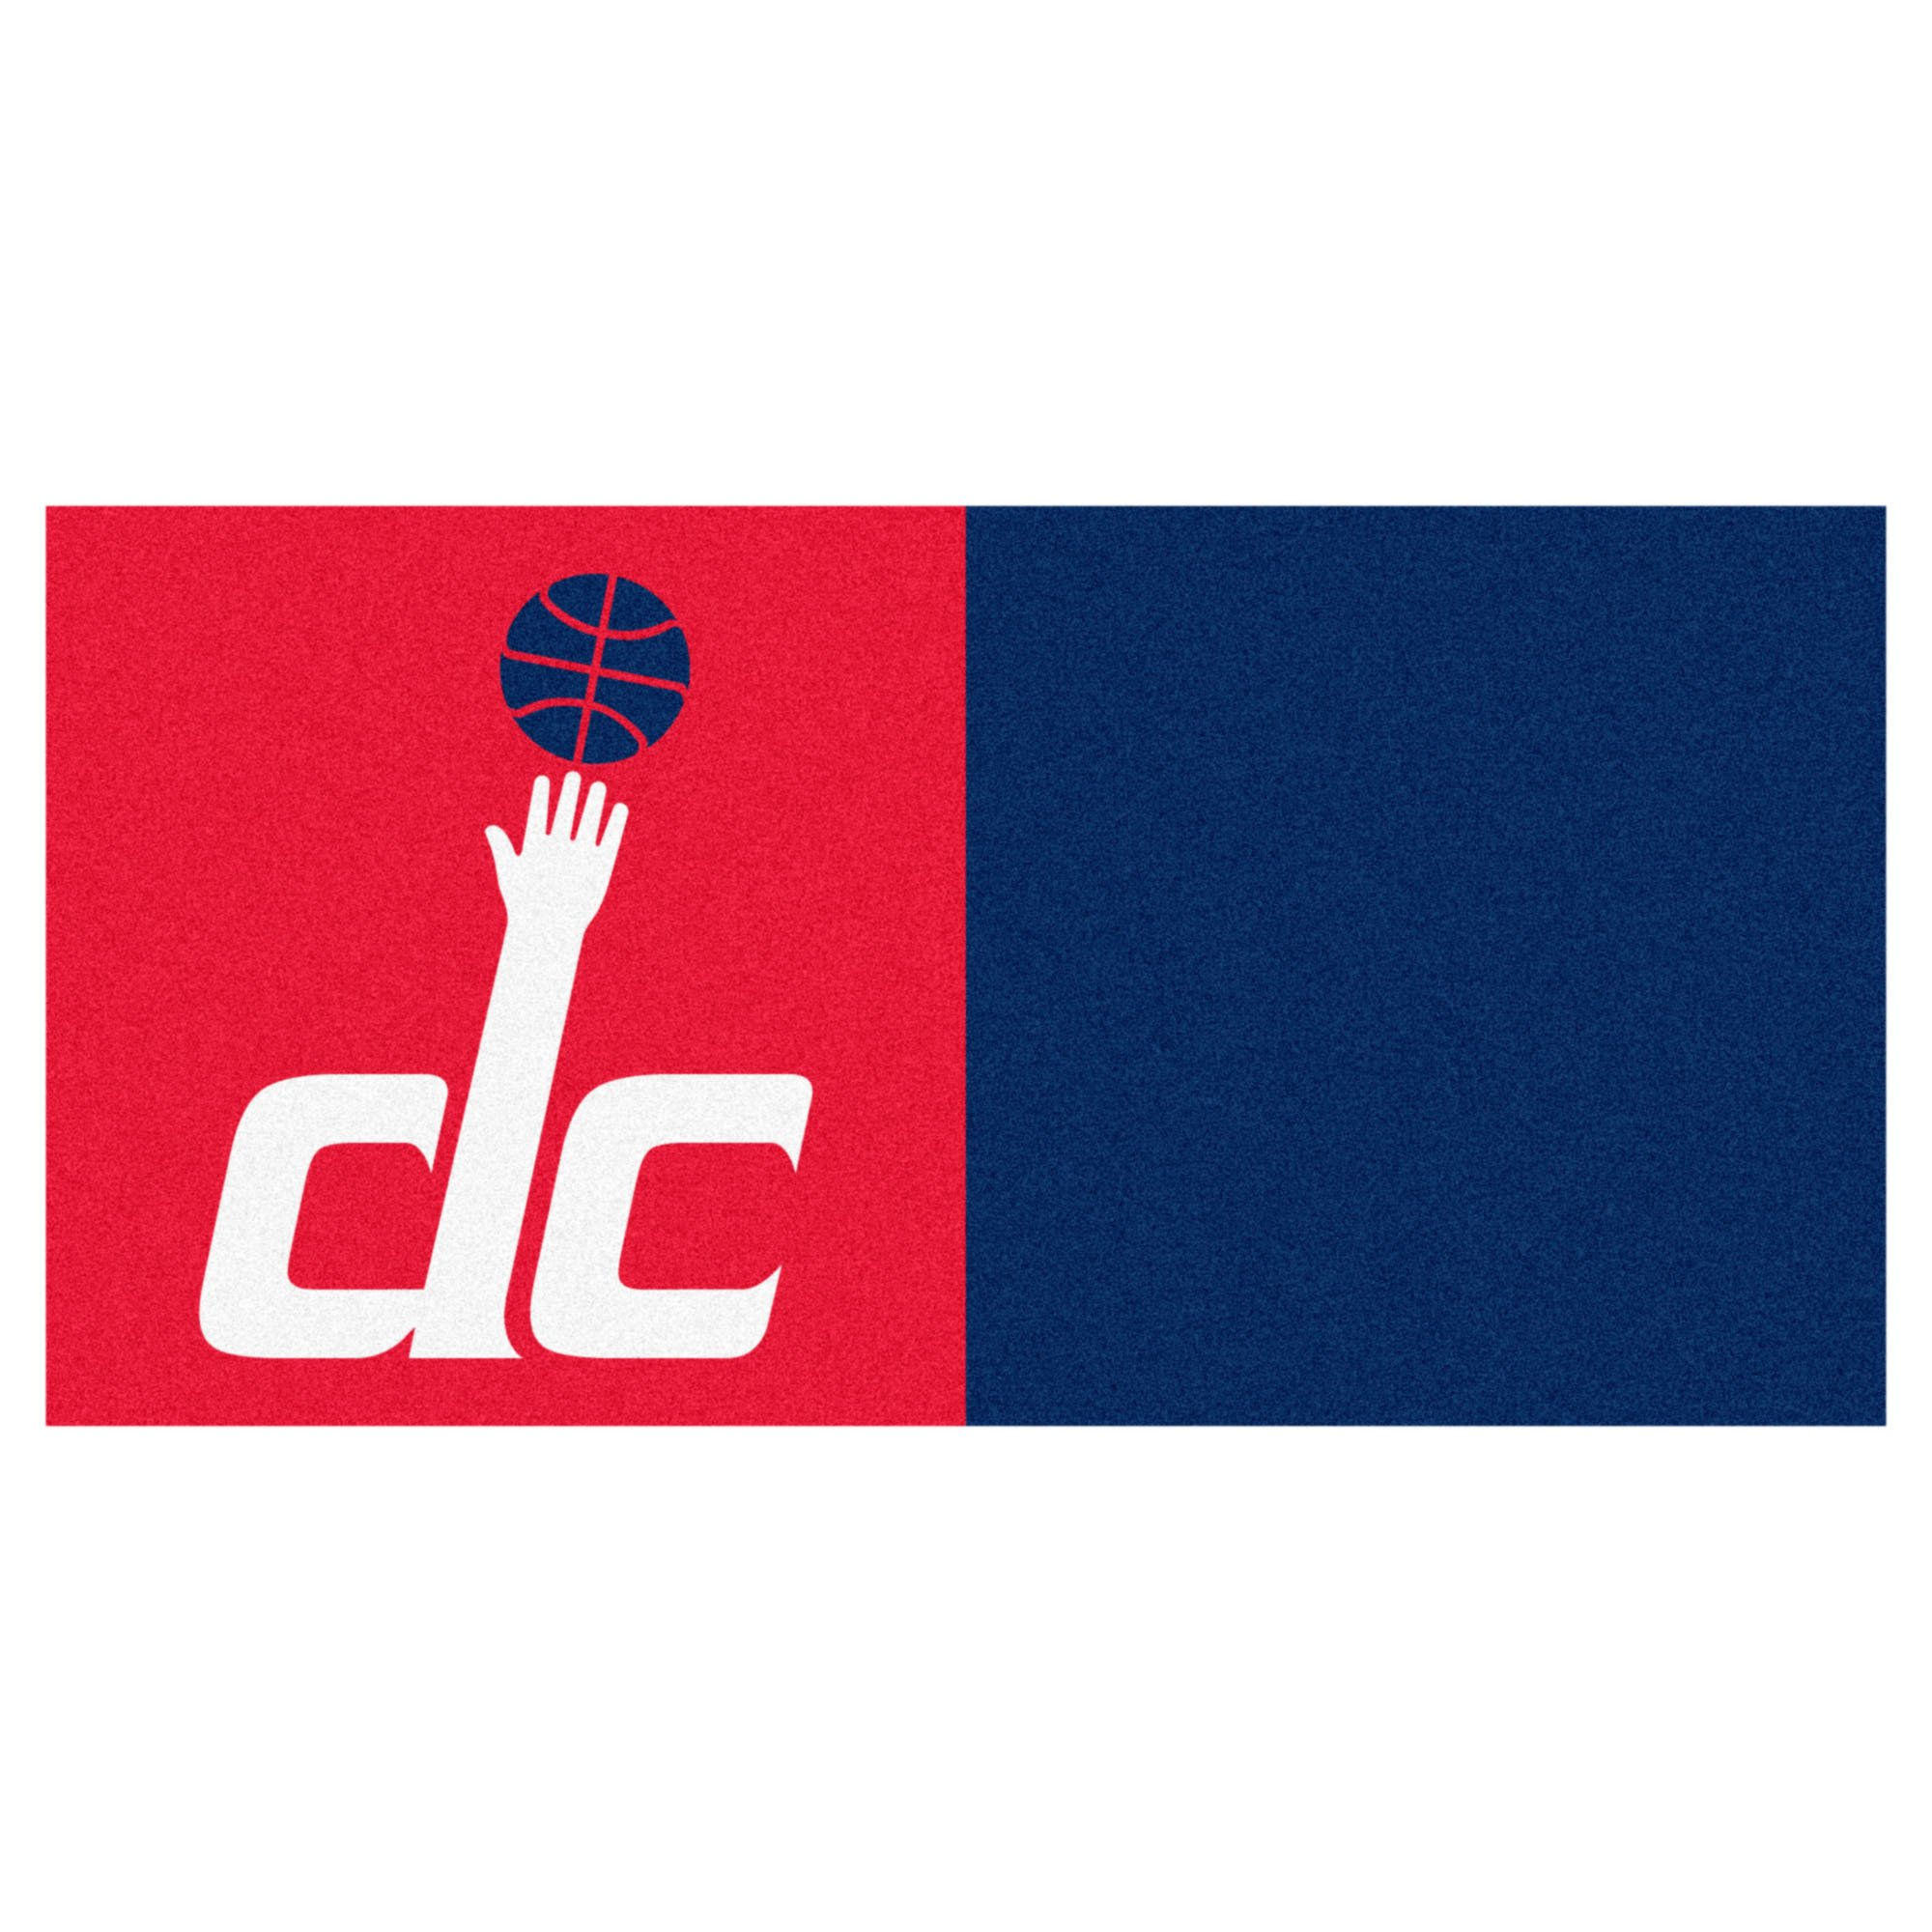 FANMATS NBA Washington Wizards Nylon Face Team Carpet Tiles